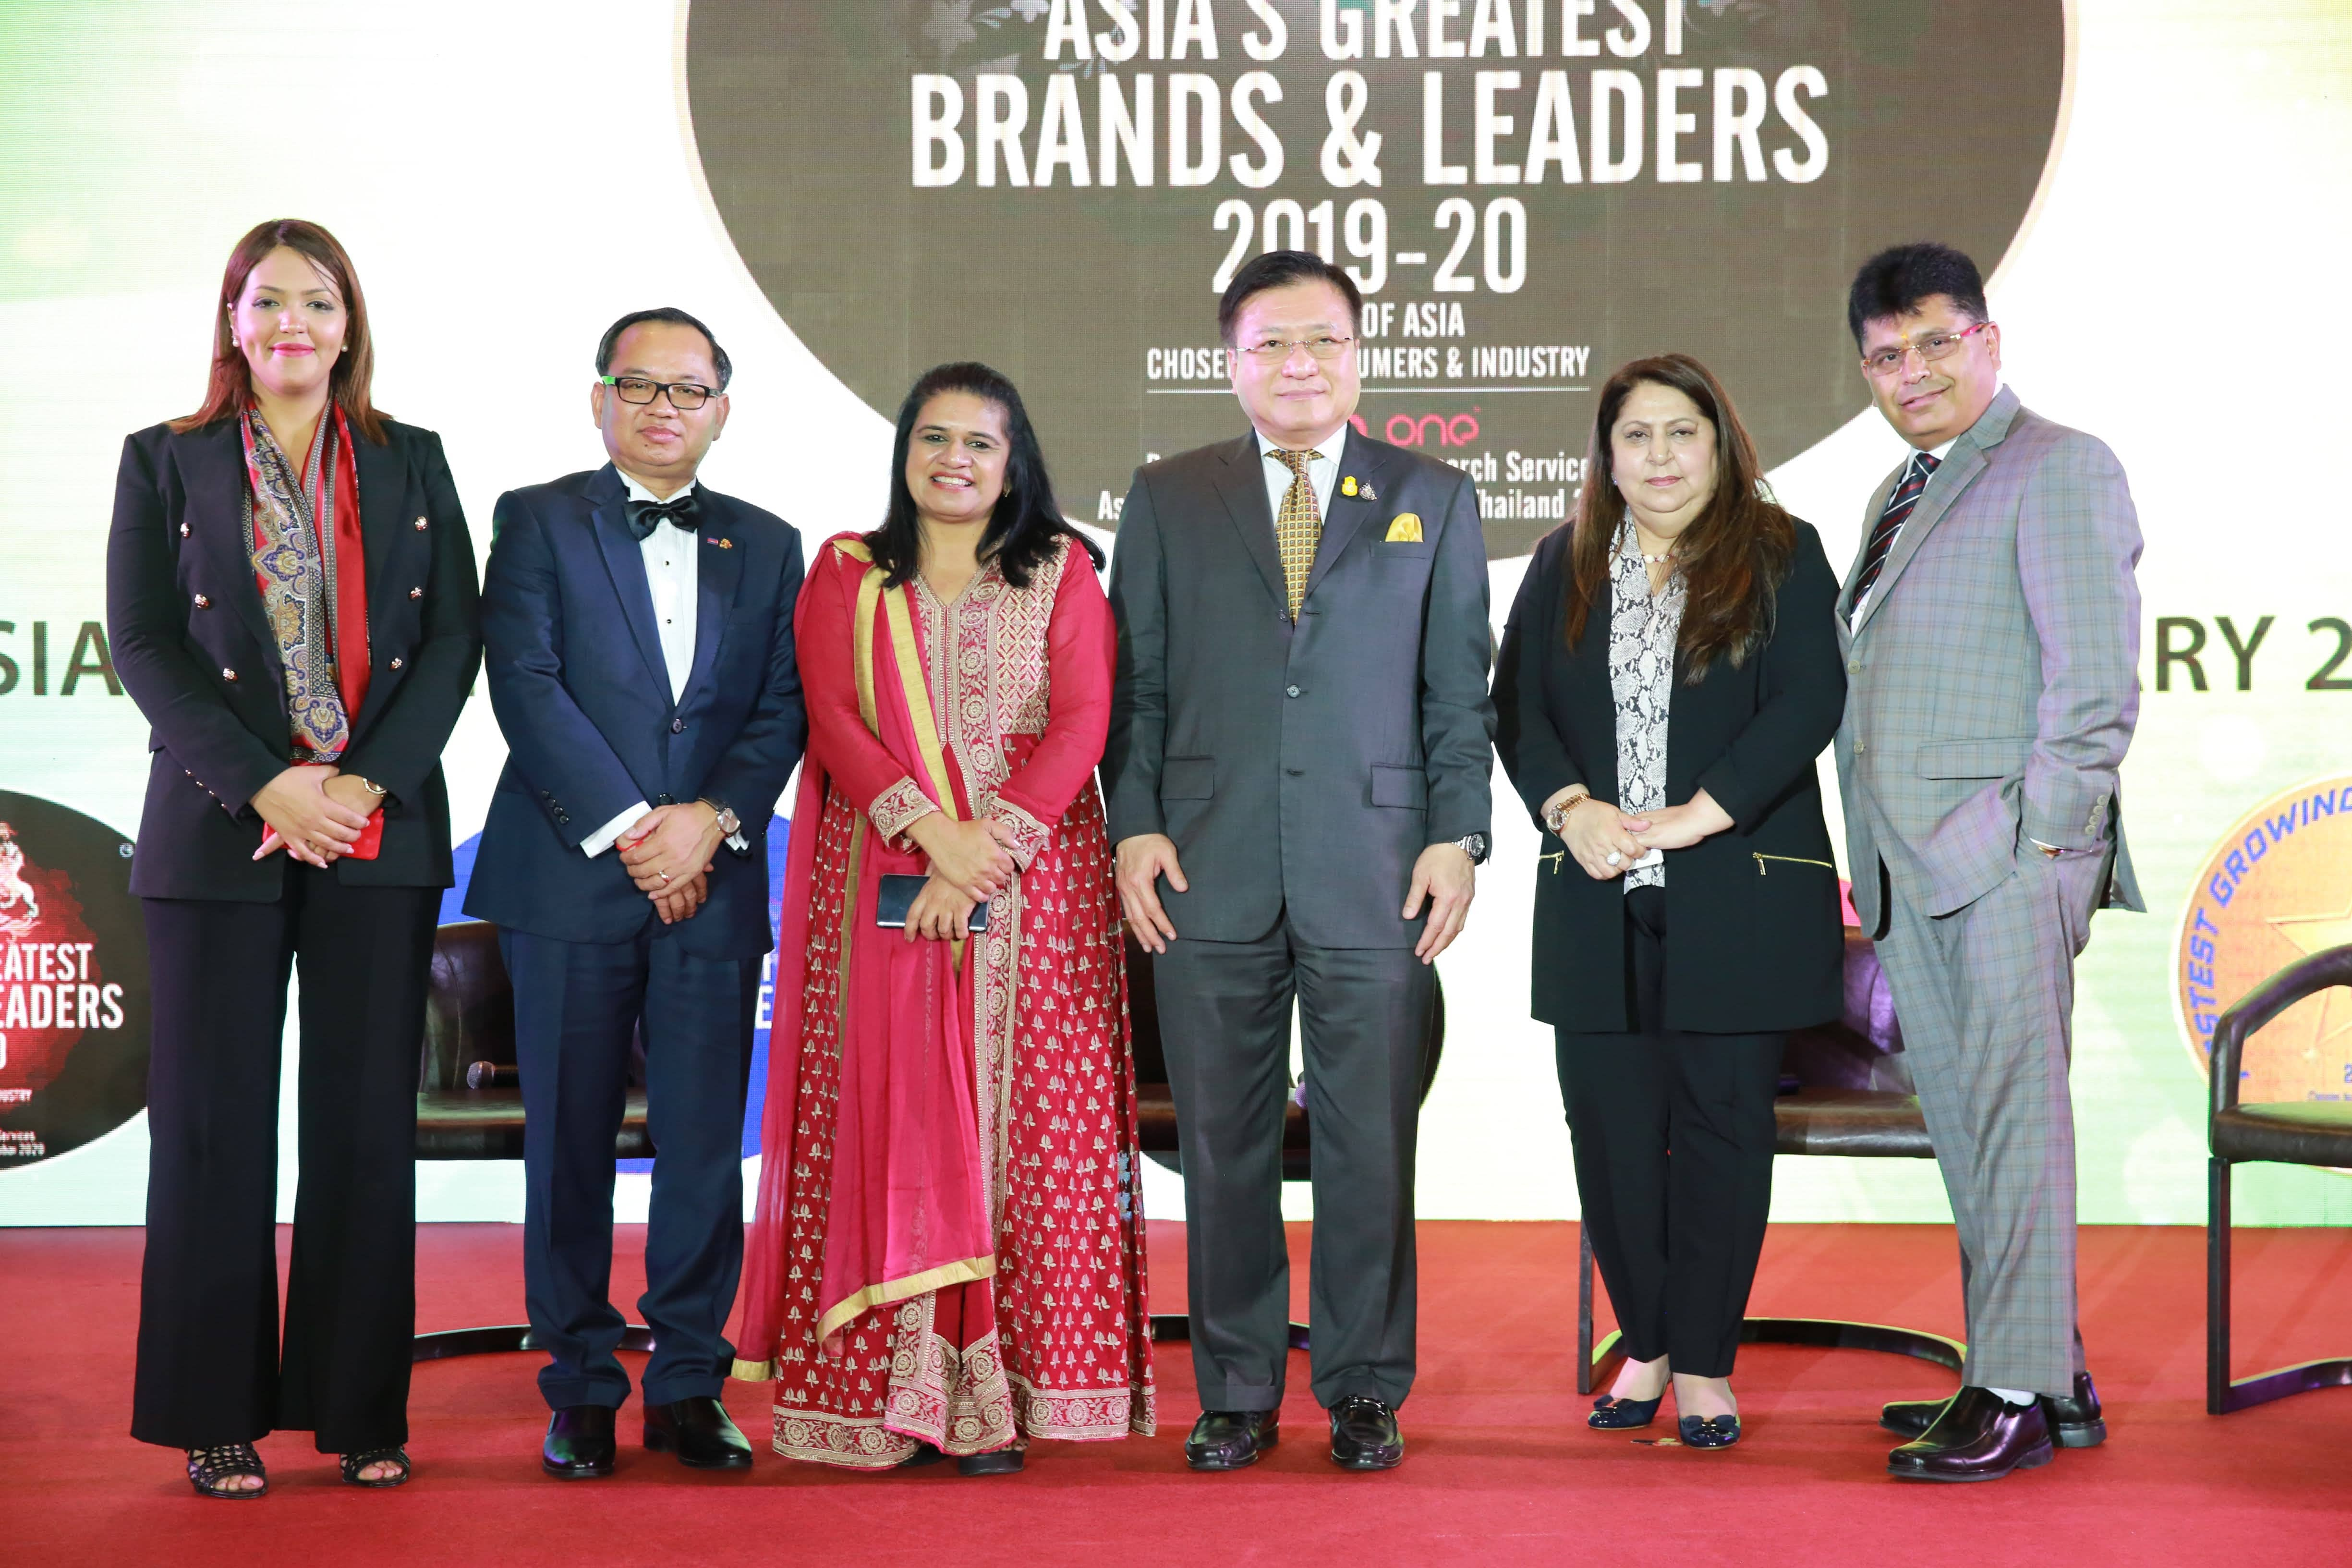 Asia's Greatest CSR and Brand Leaders of 2019-2020 @Bangkok - 07.02.2020